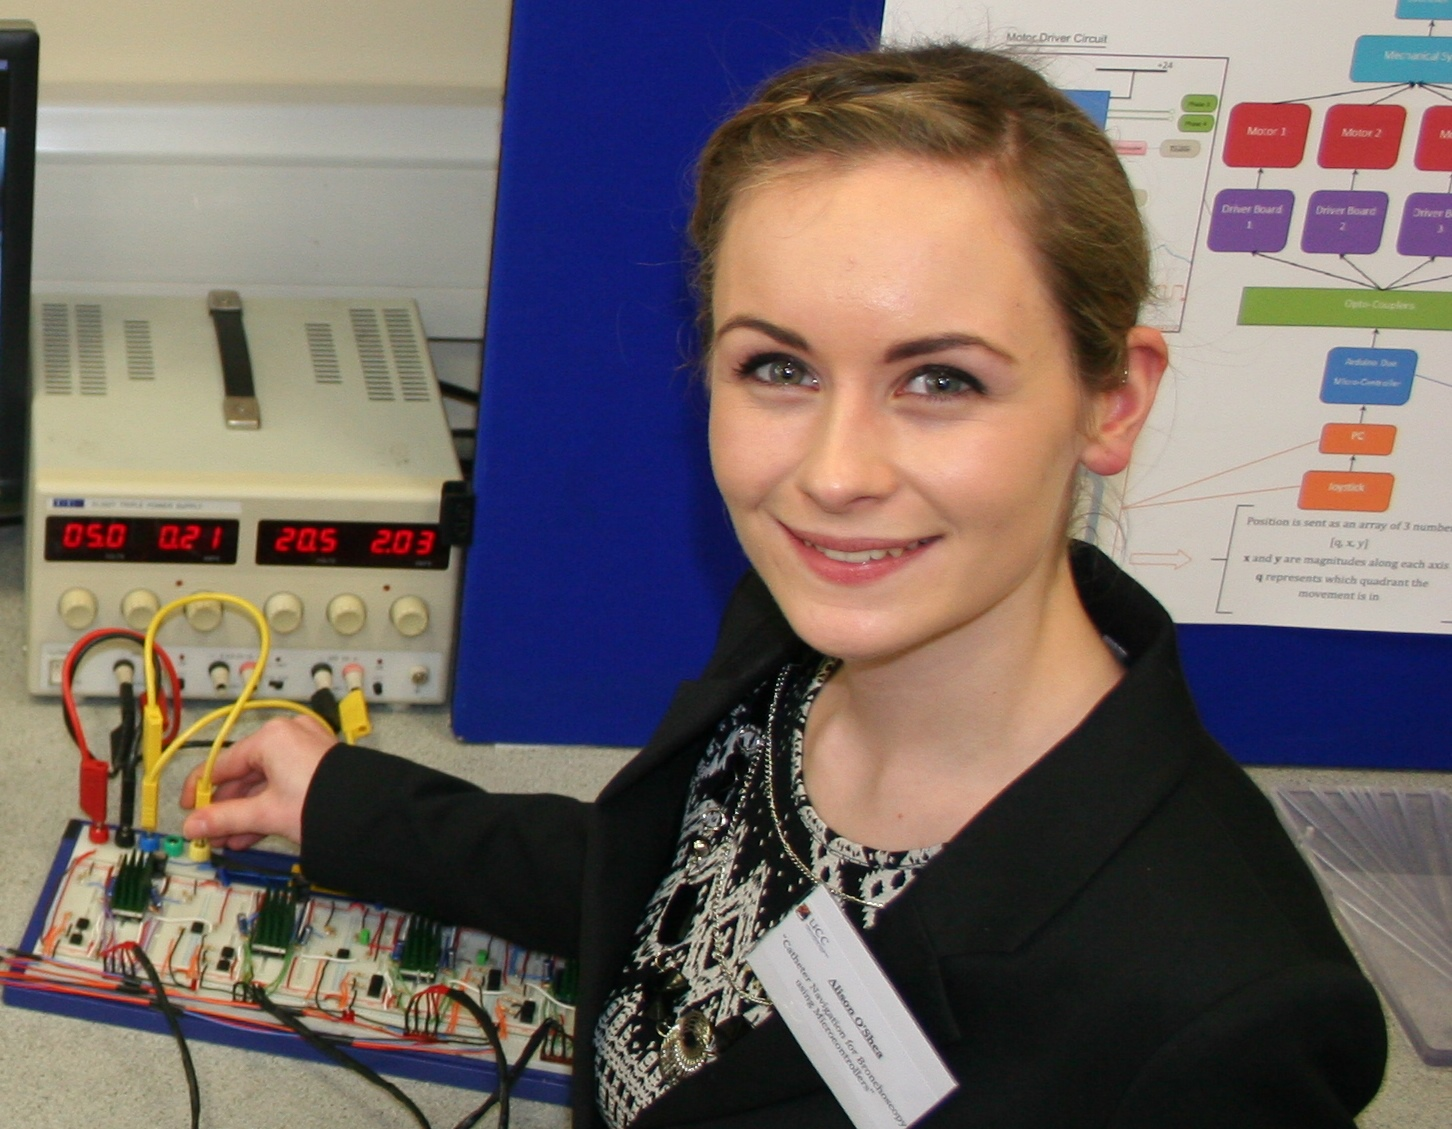 Alison O'Shea final year Electrical Engineering student wins a 2014 The Naughton Fellowship awards